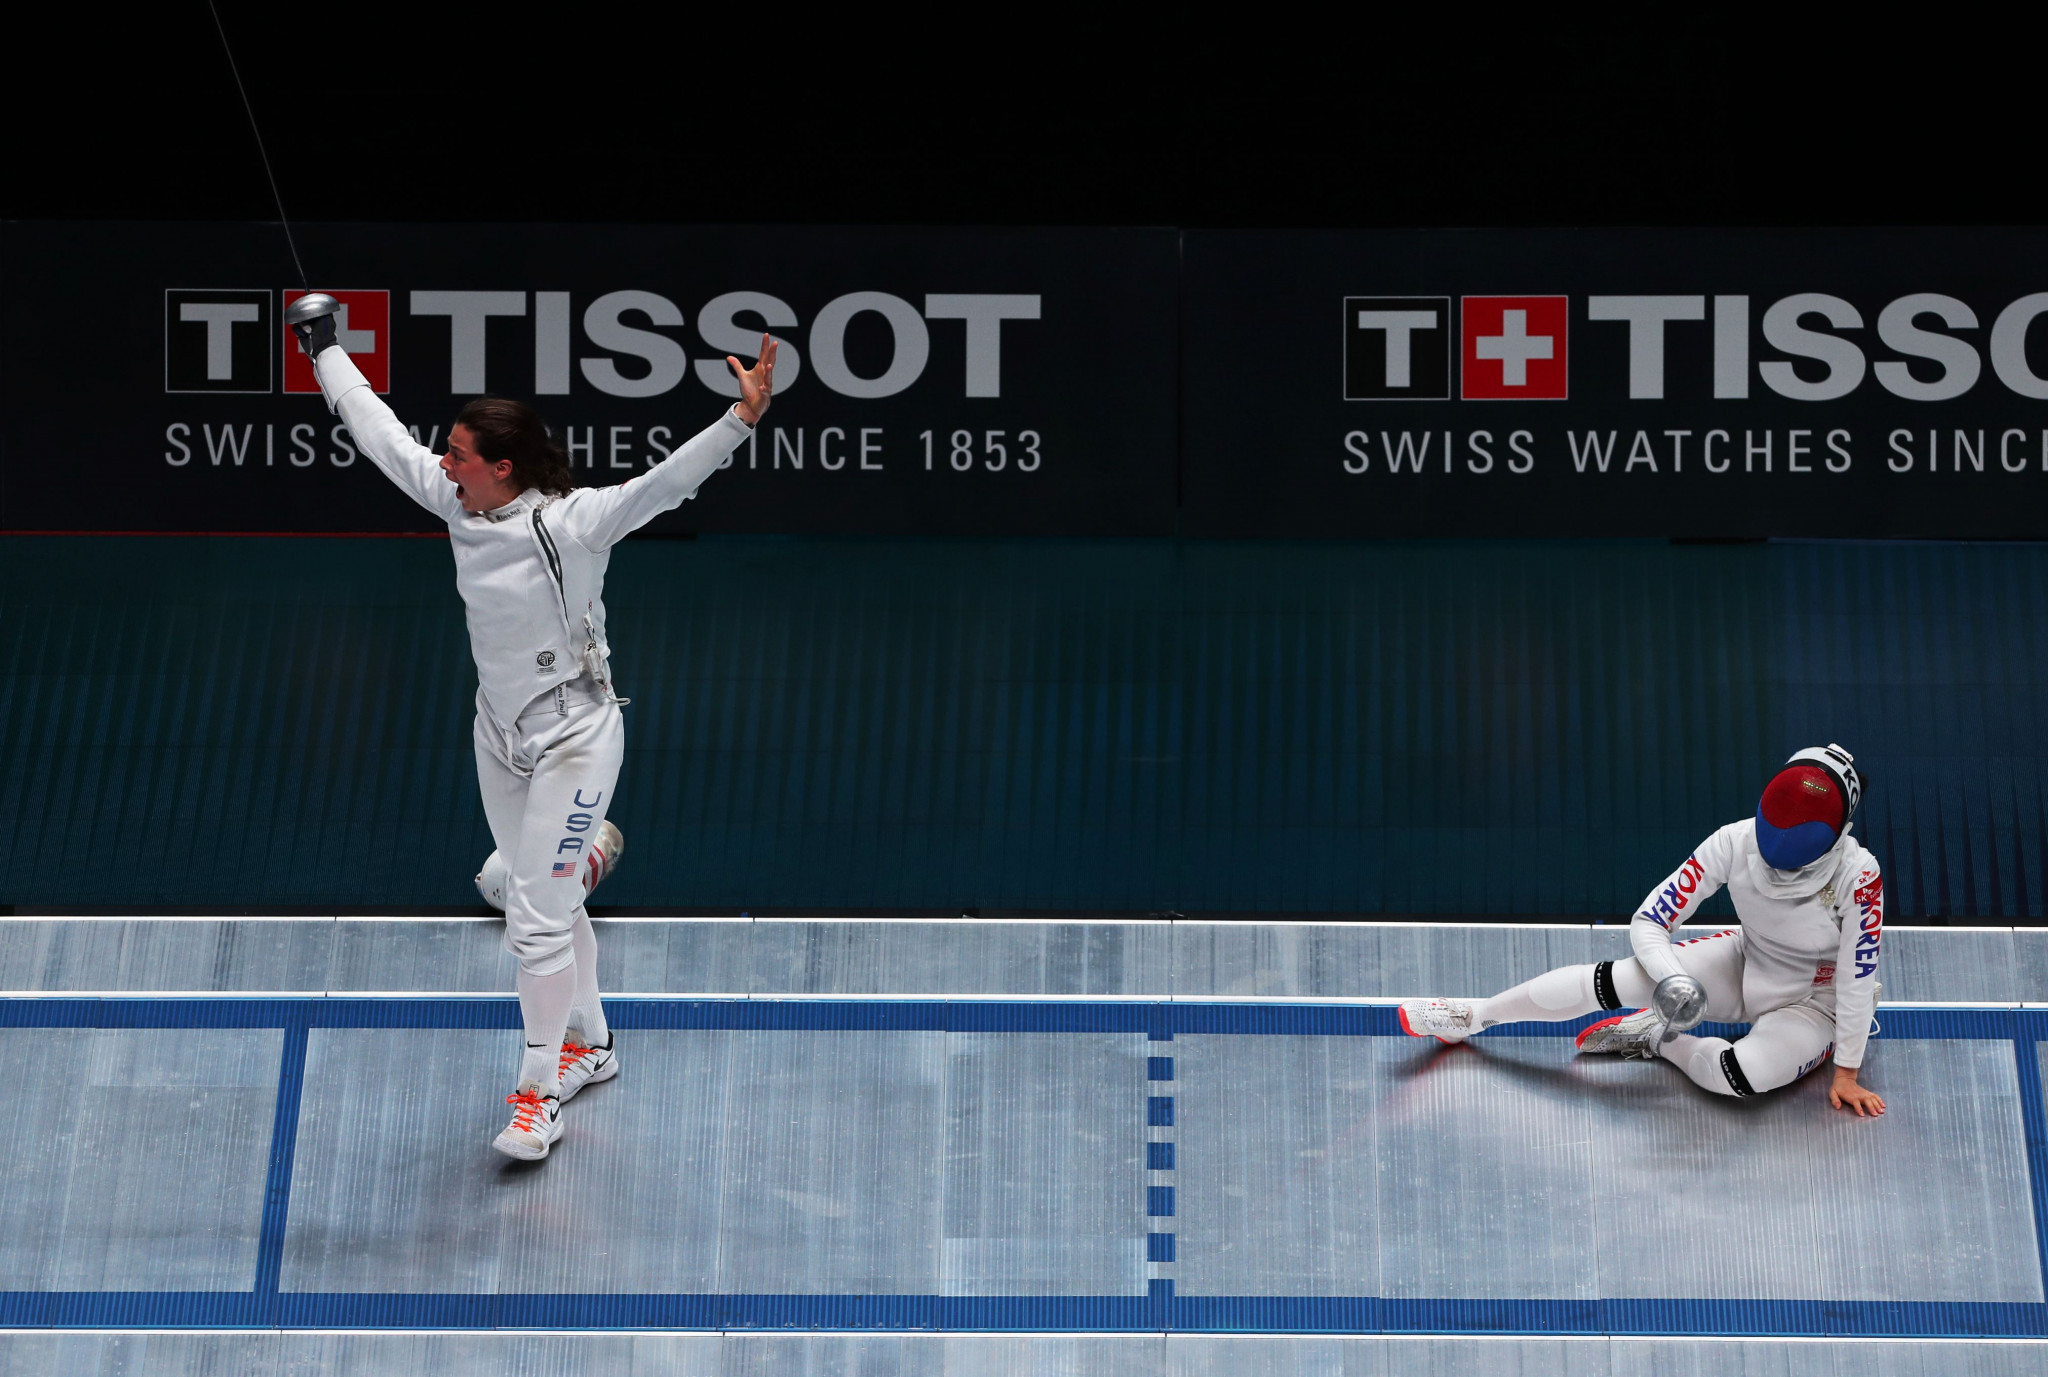 United States take gold to claim first women's team épée medal at FIE Fencing World Championships